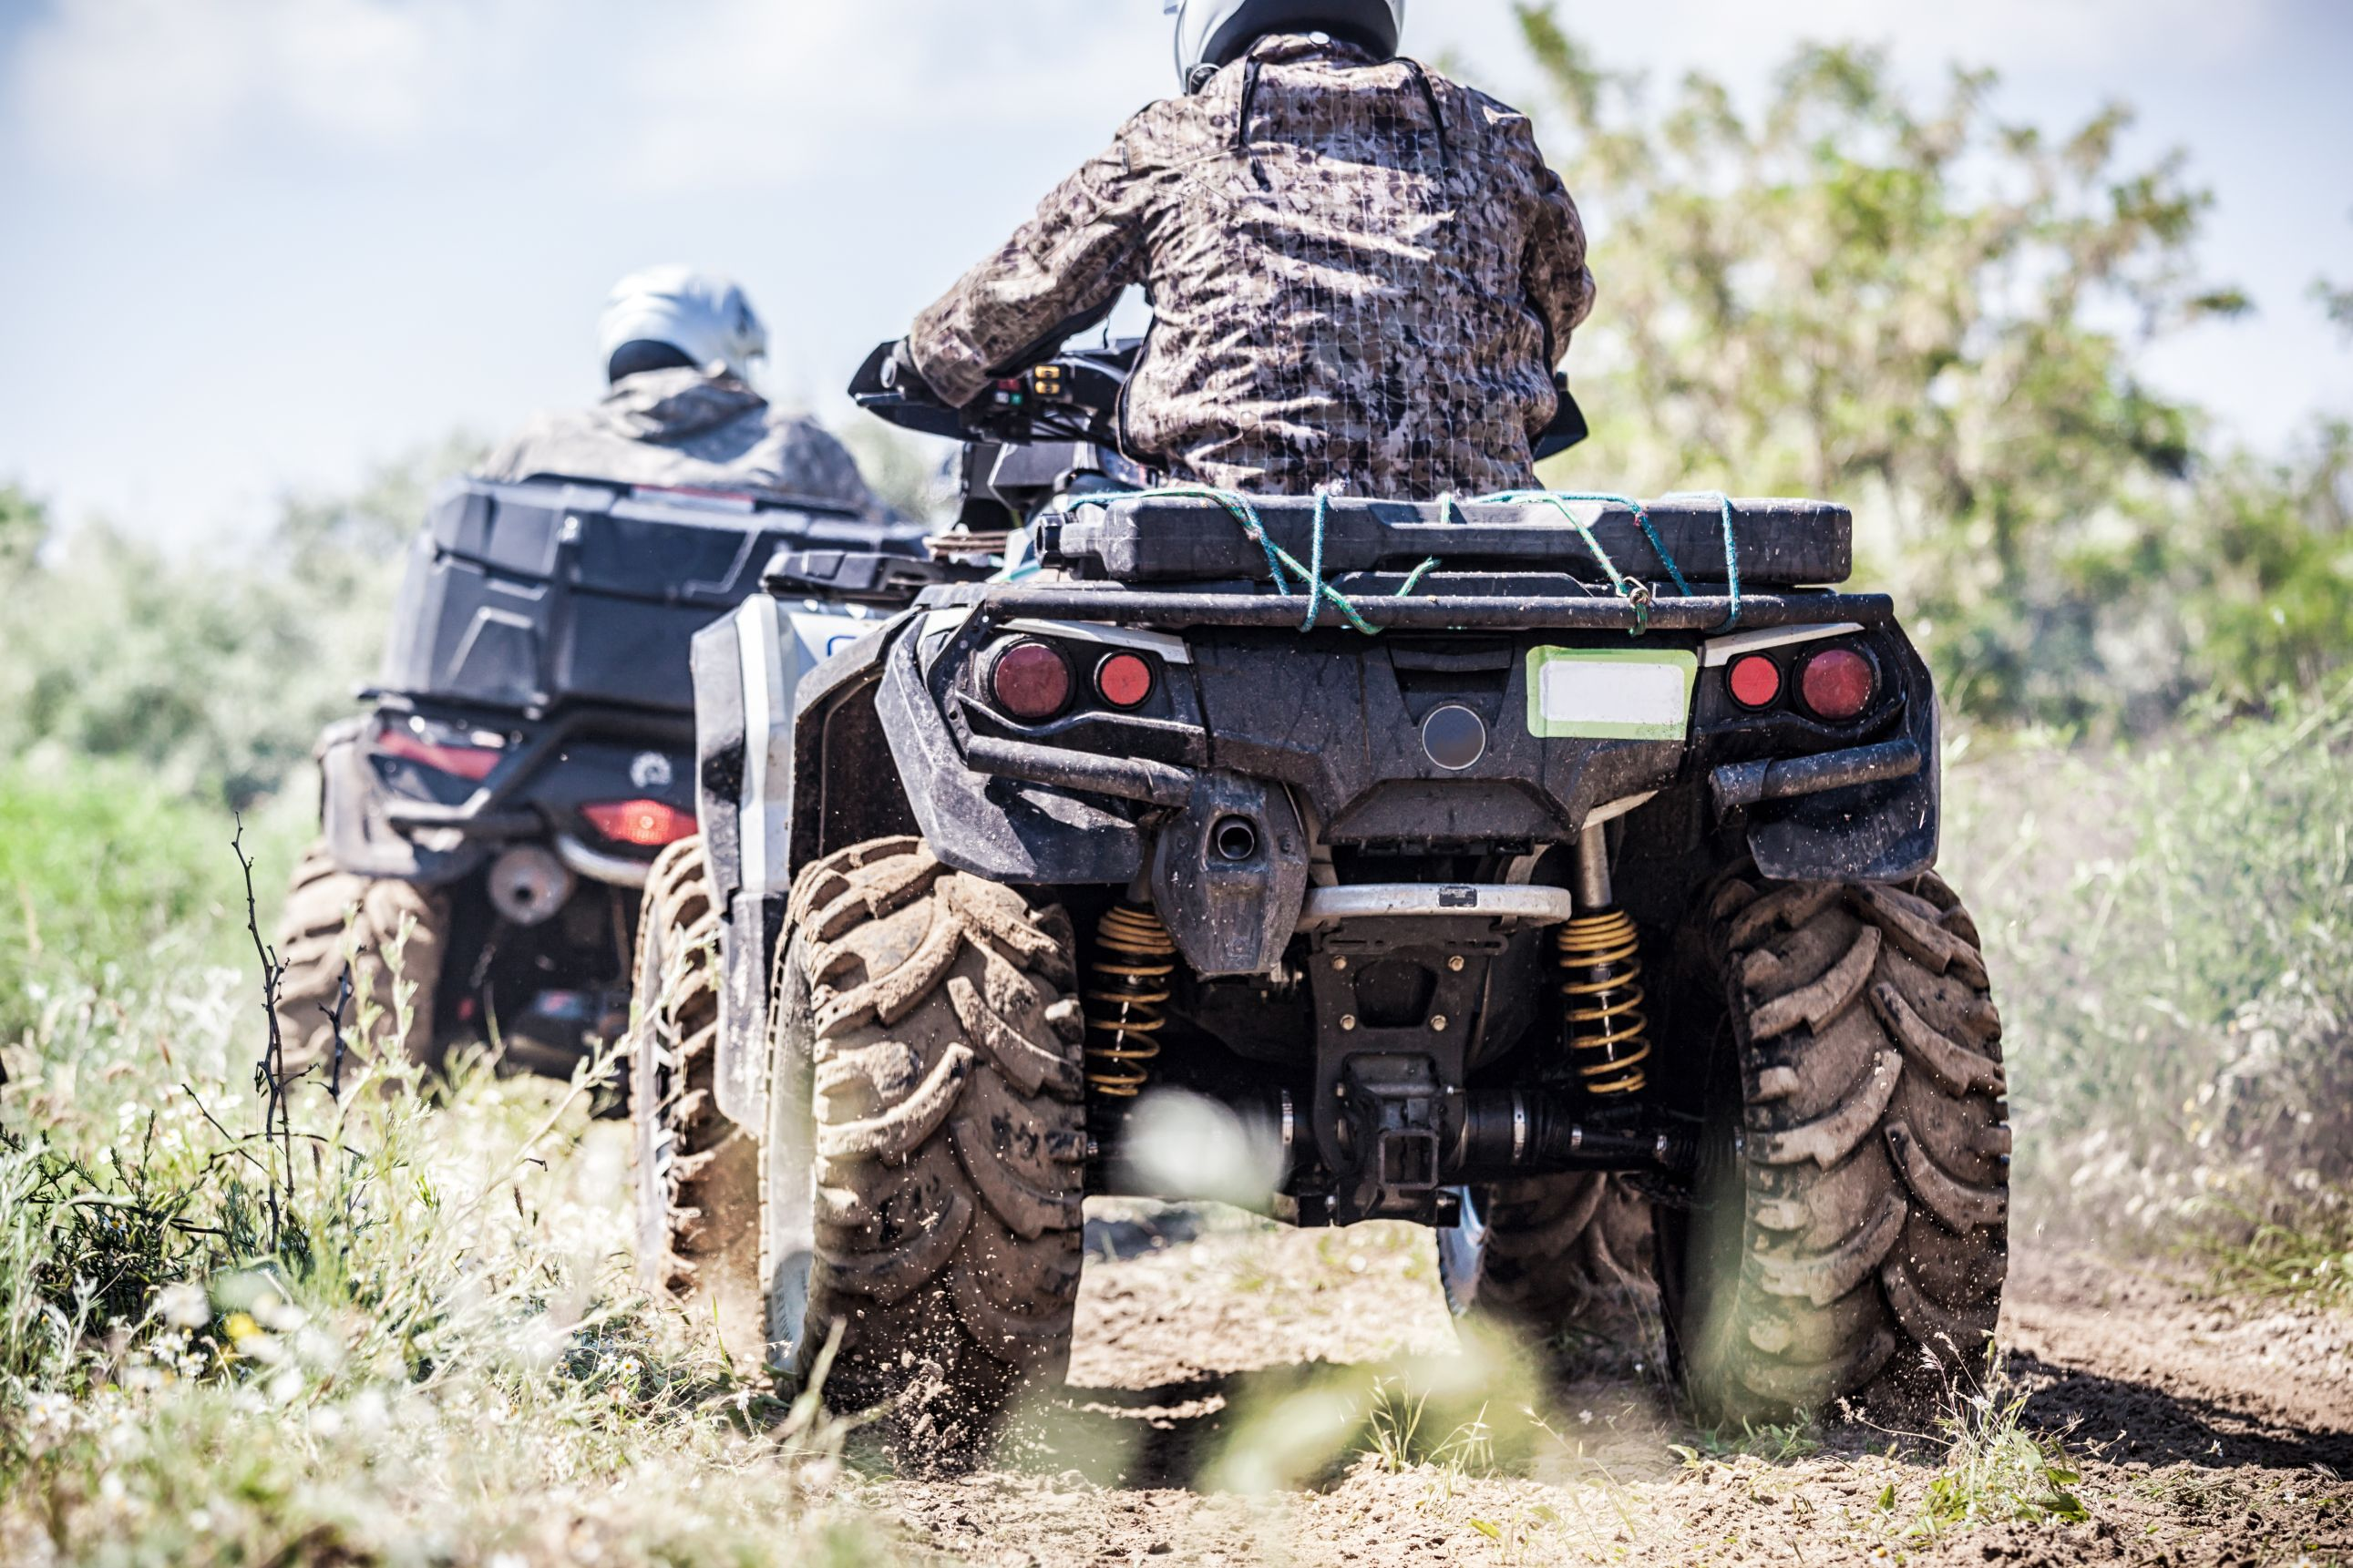 All-Terrain Vehicles - ATVs